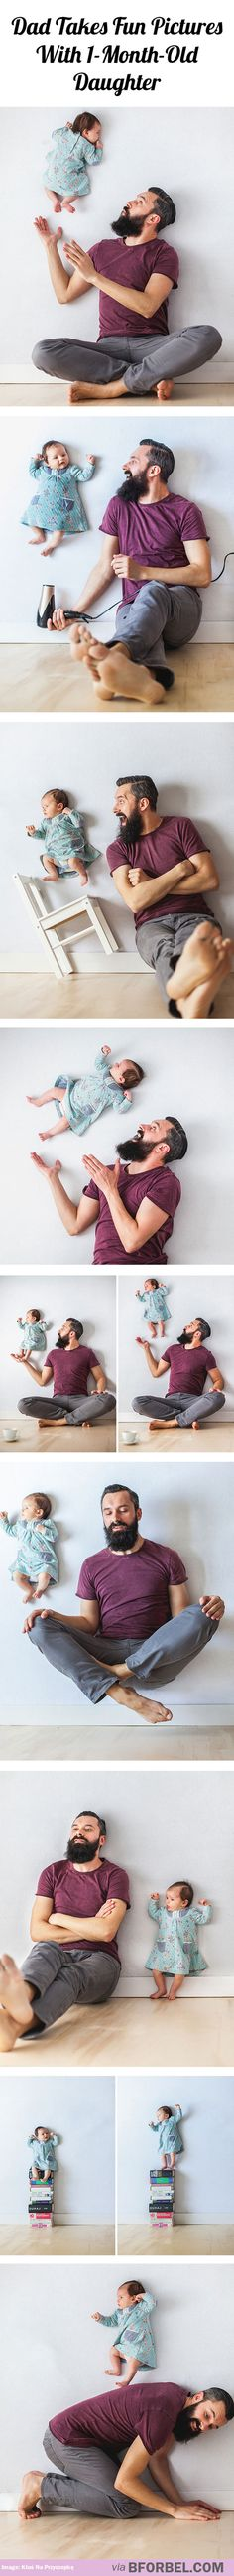 Dad takes fun pictures with one-month-old daughter